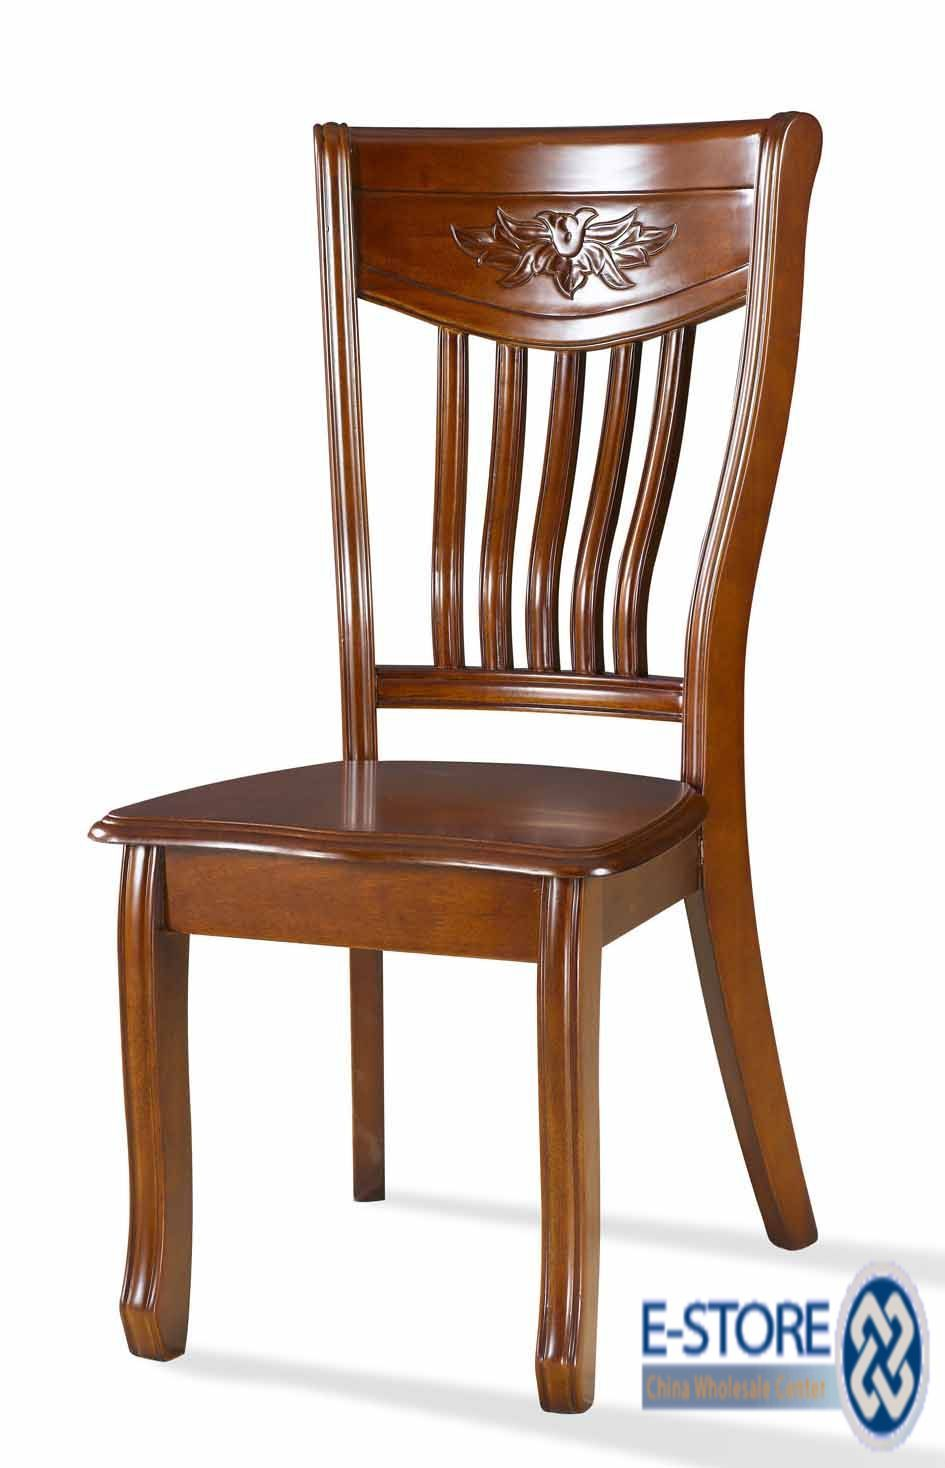 Antique Wooden Dining Chairs Chair Design Wooden Antique Wooden Chairs Wooden Chair